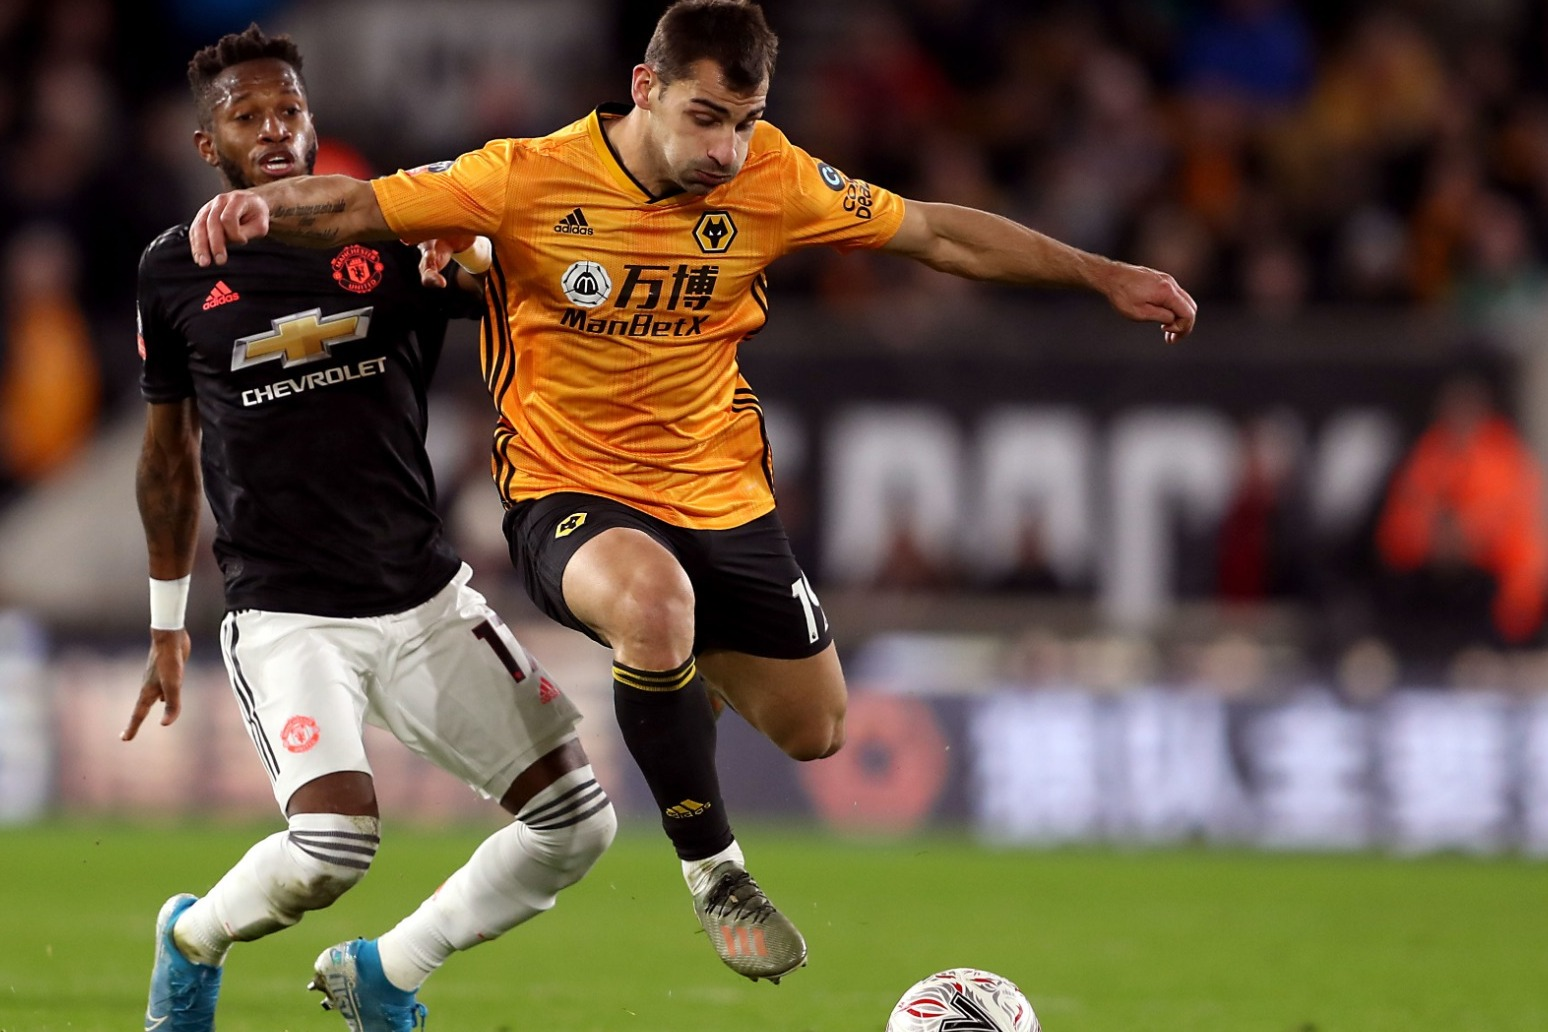 MANCHESTER UNITED FIRE BLANKS AGAIN IN GOALLESS FA CUP STALEMATE AT WOLVES